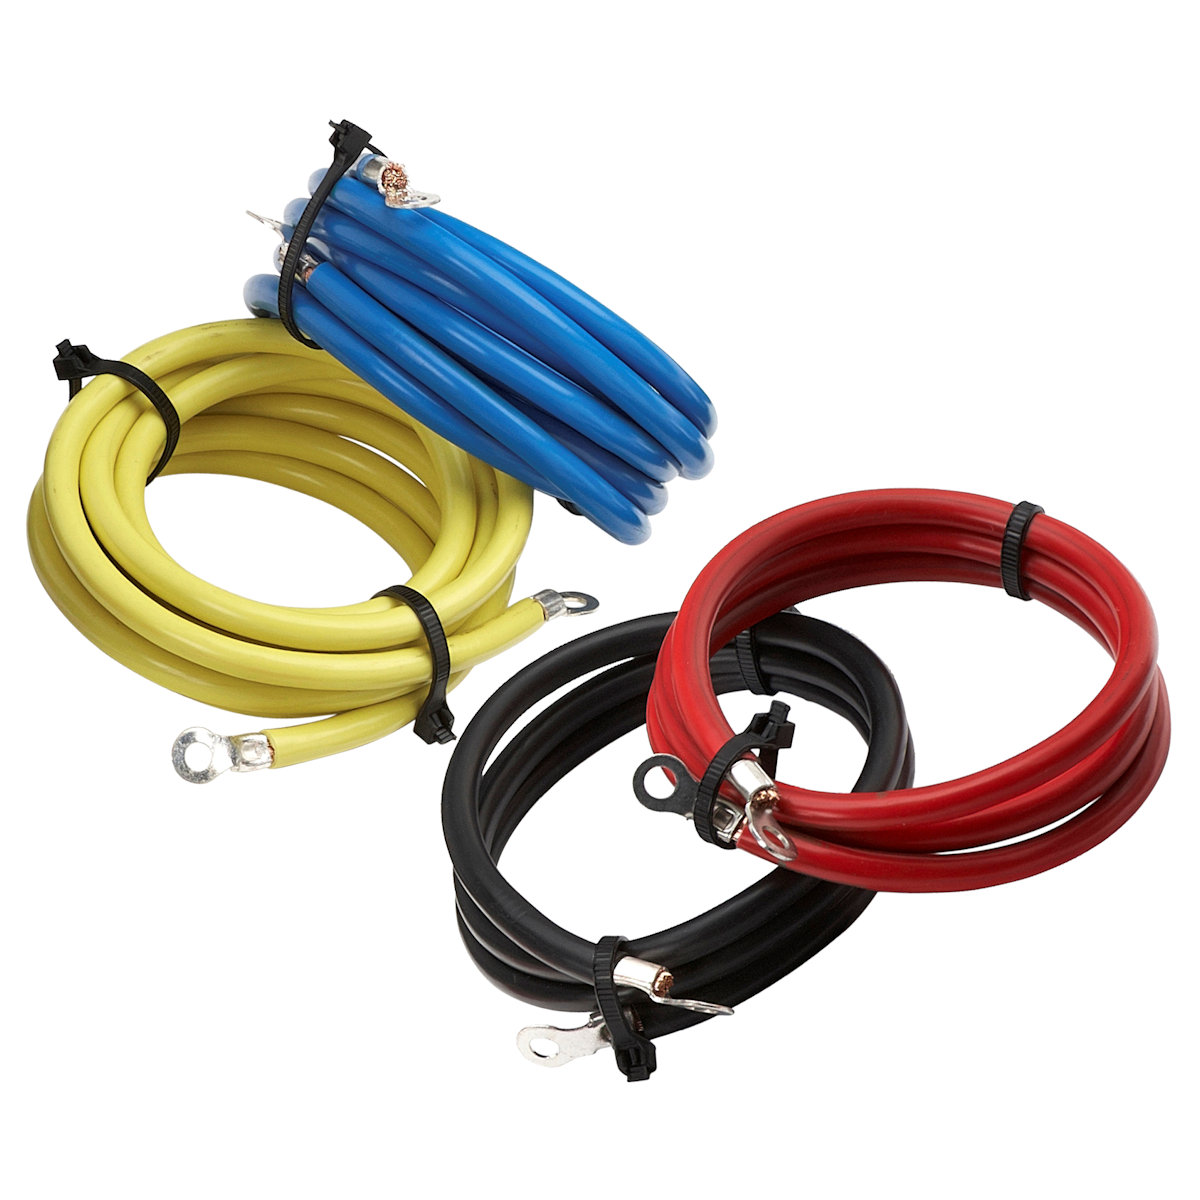 small resolution of viper atv utv wiring pack technical support winch wiring setup moto alliance